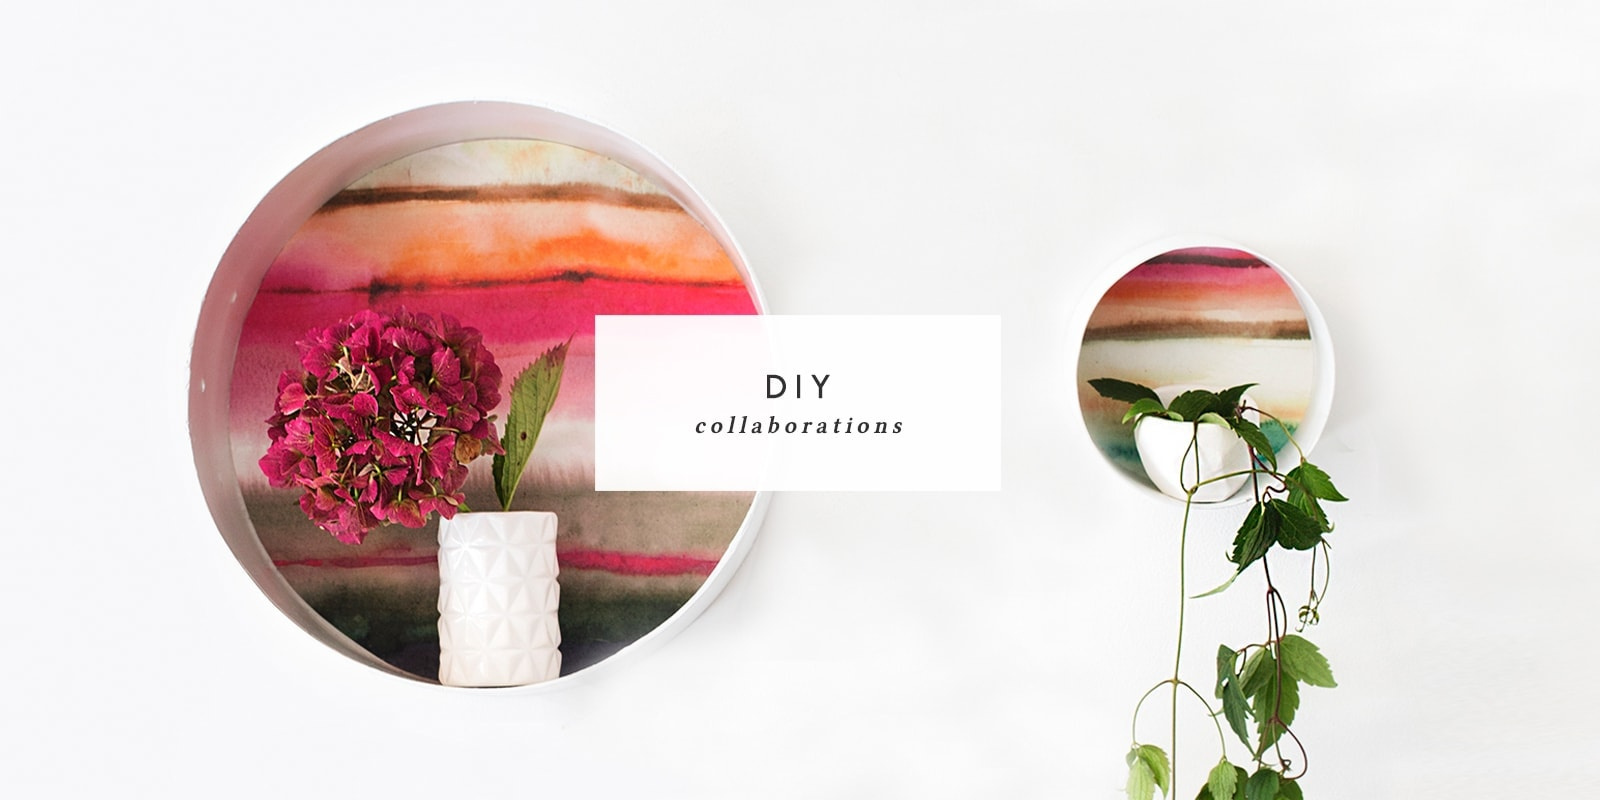 DIY collaborations